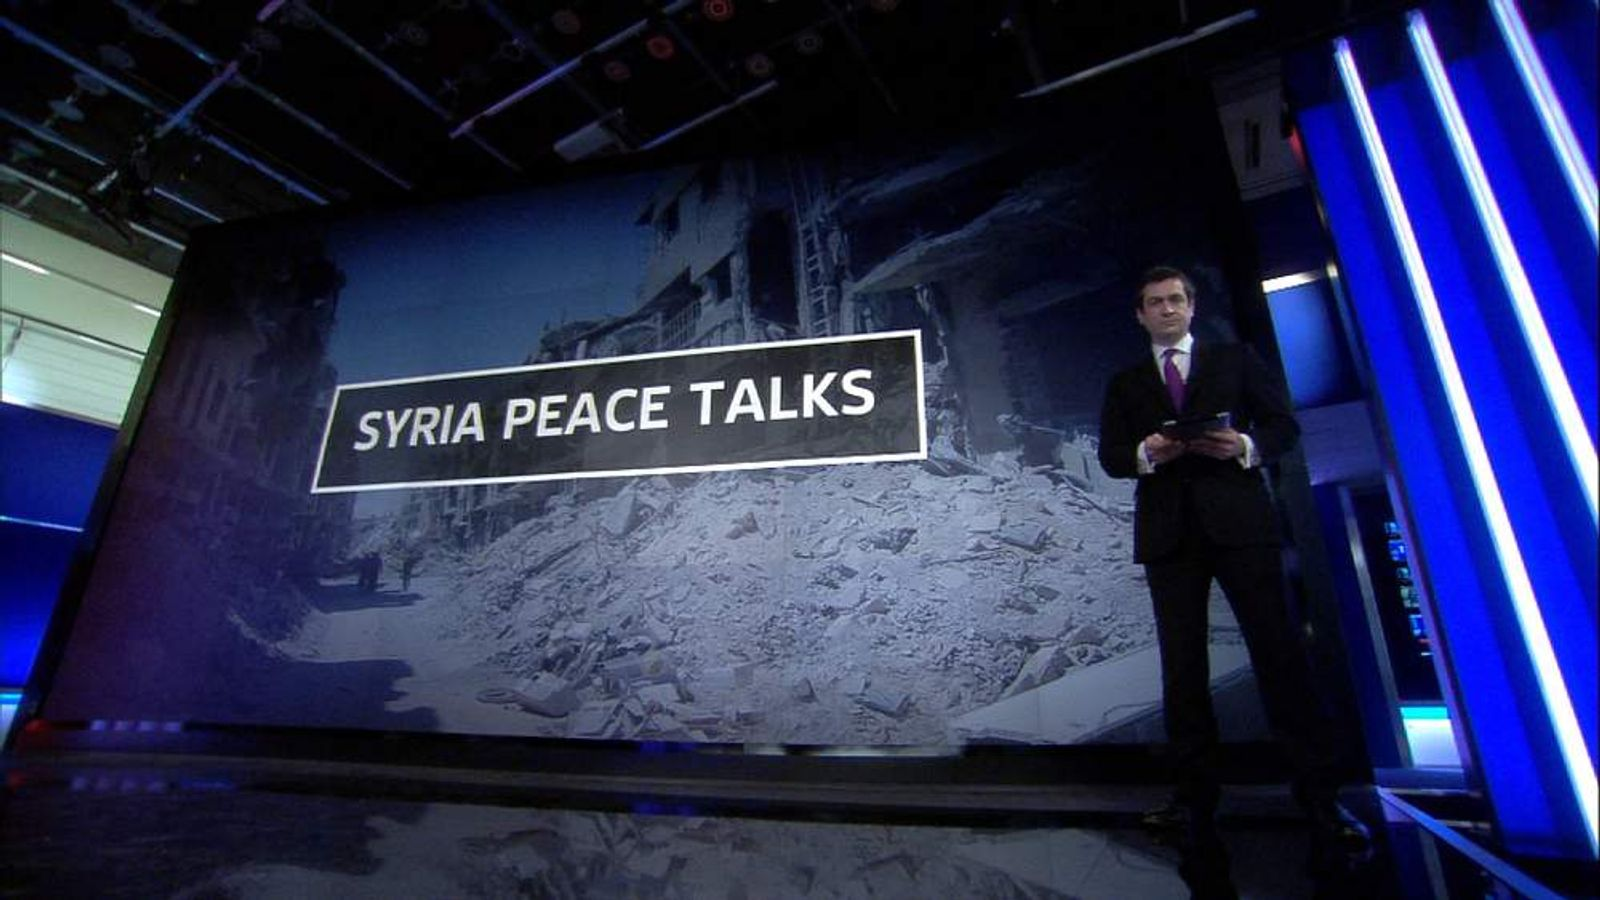 Niall Paterson explains the background to the Syria Peace Talks